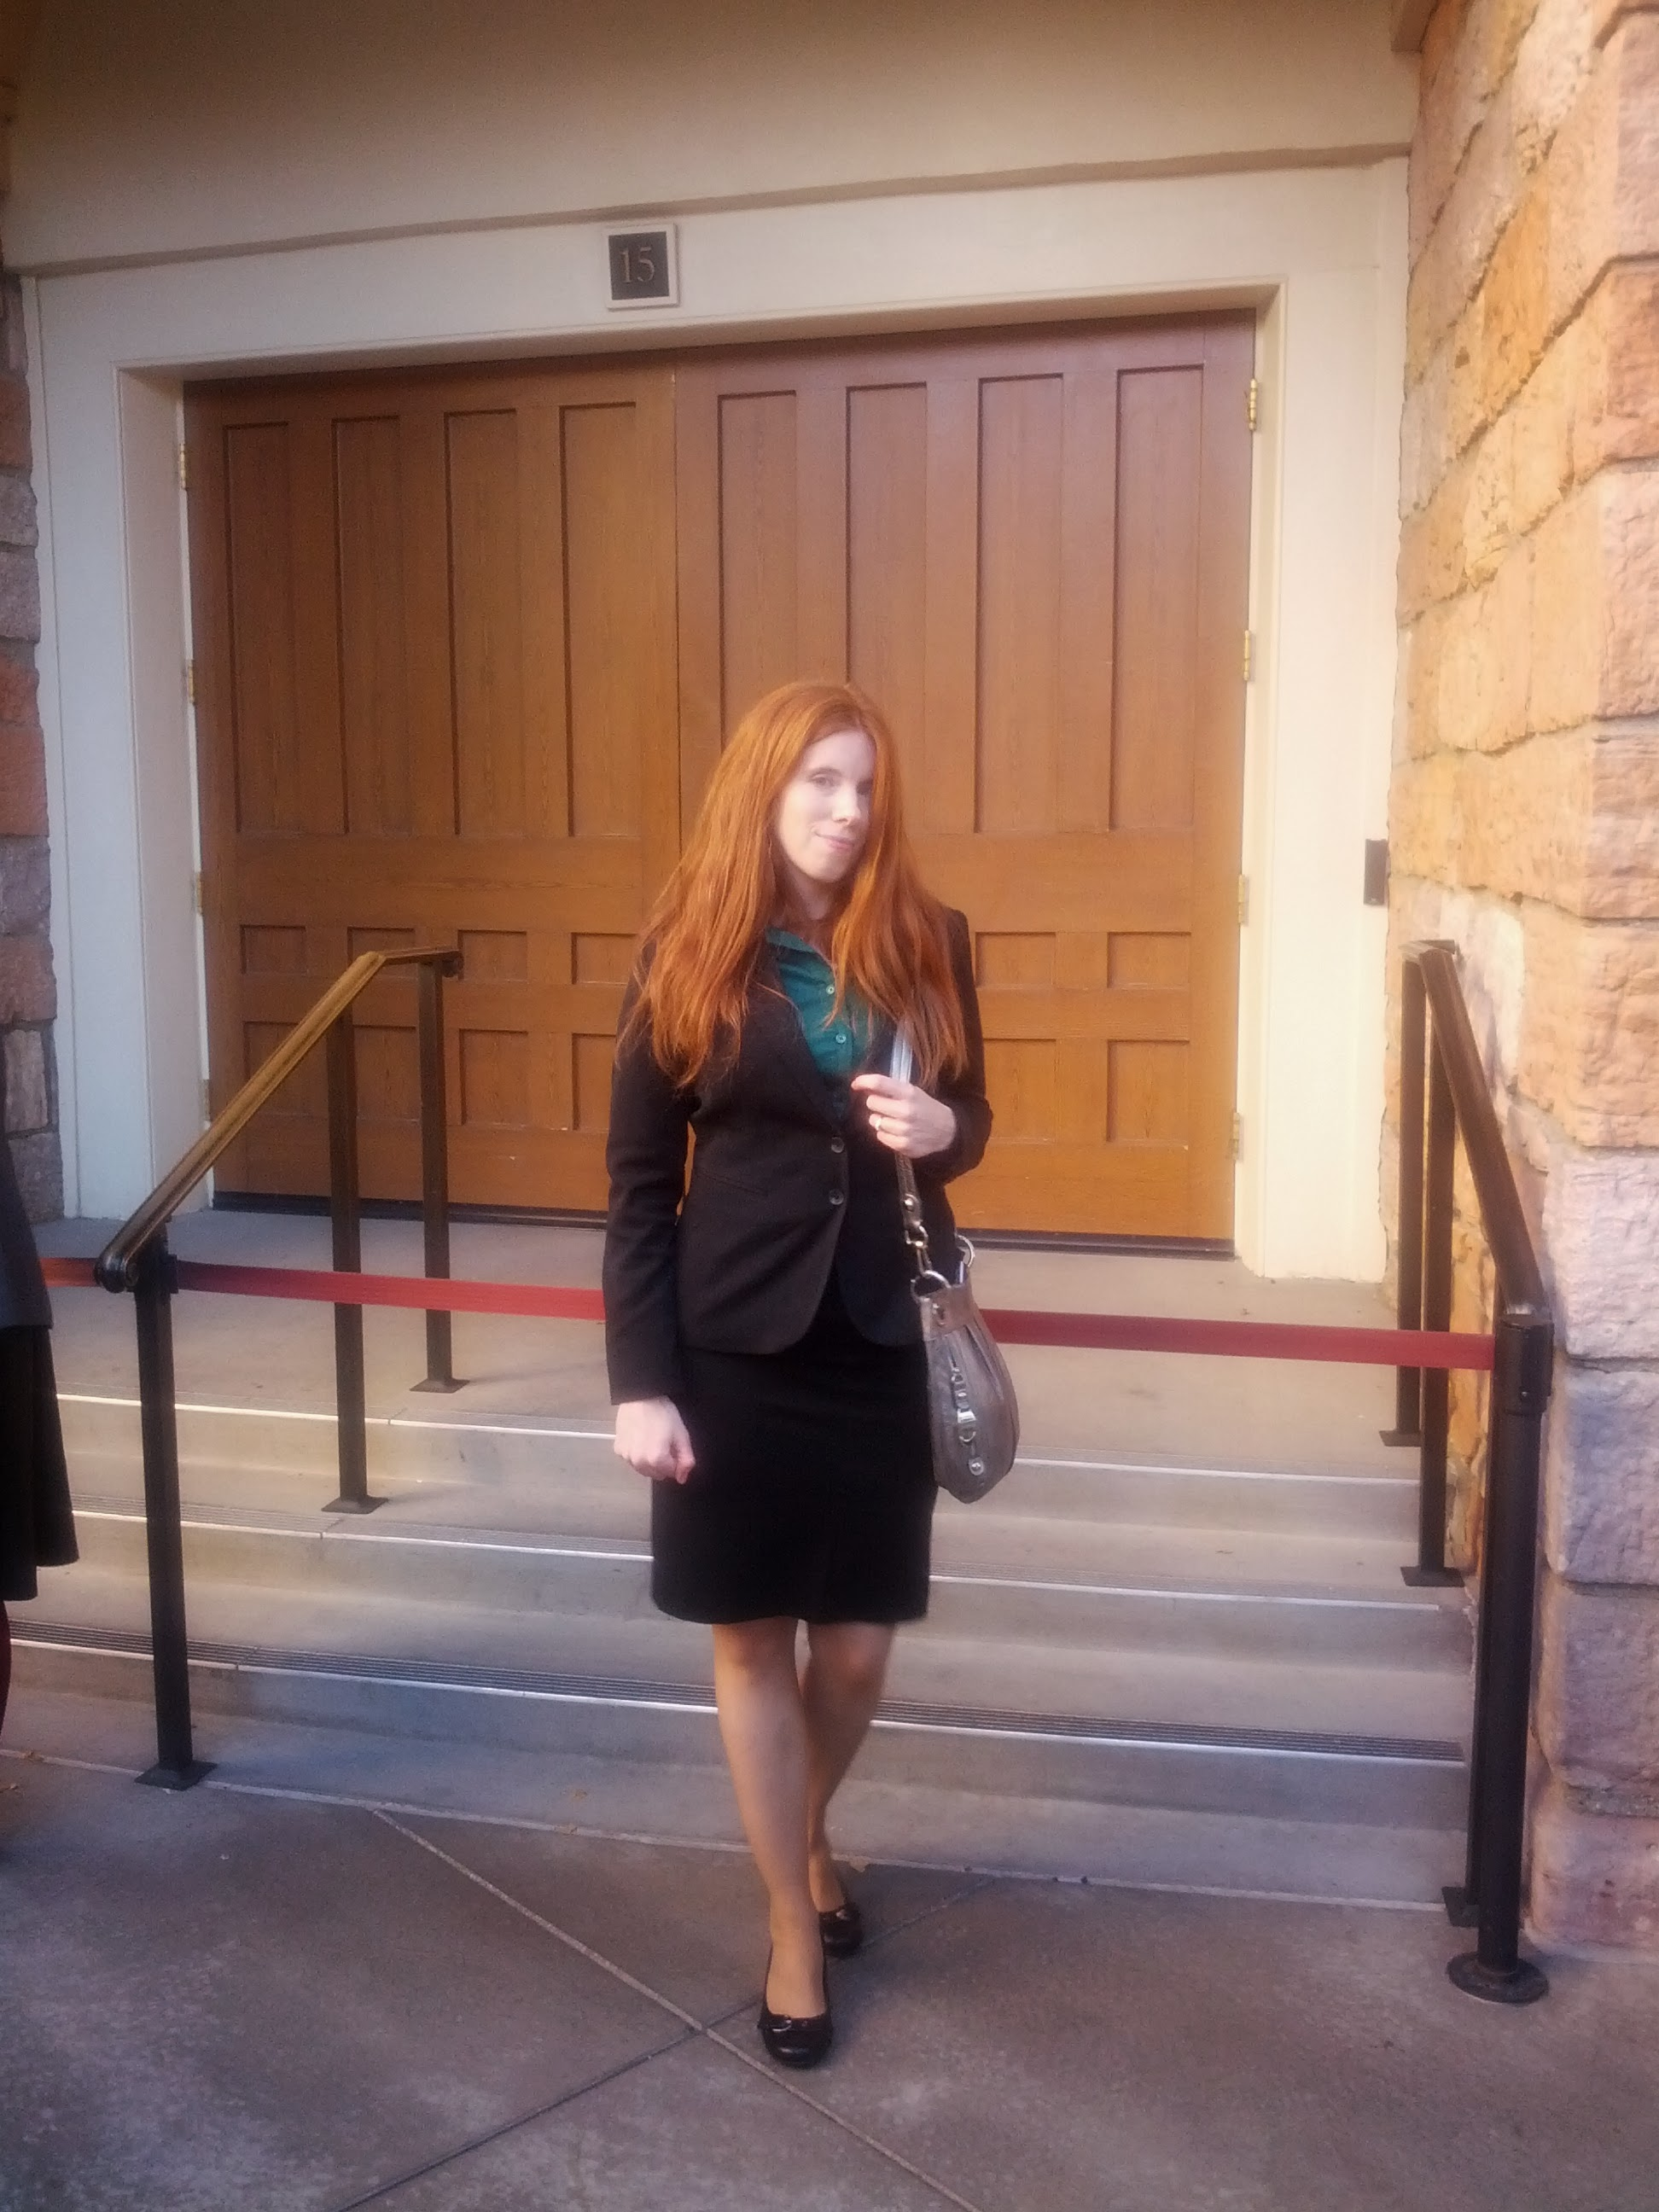 Knocking at the Tabernacle Door: Waiting in Line with Ordain Women